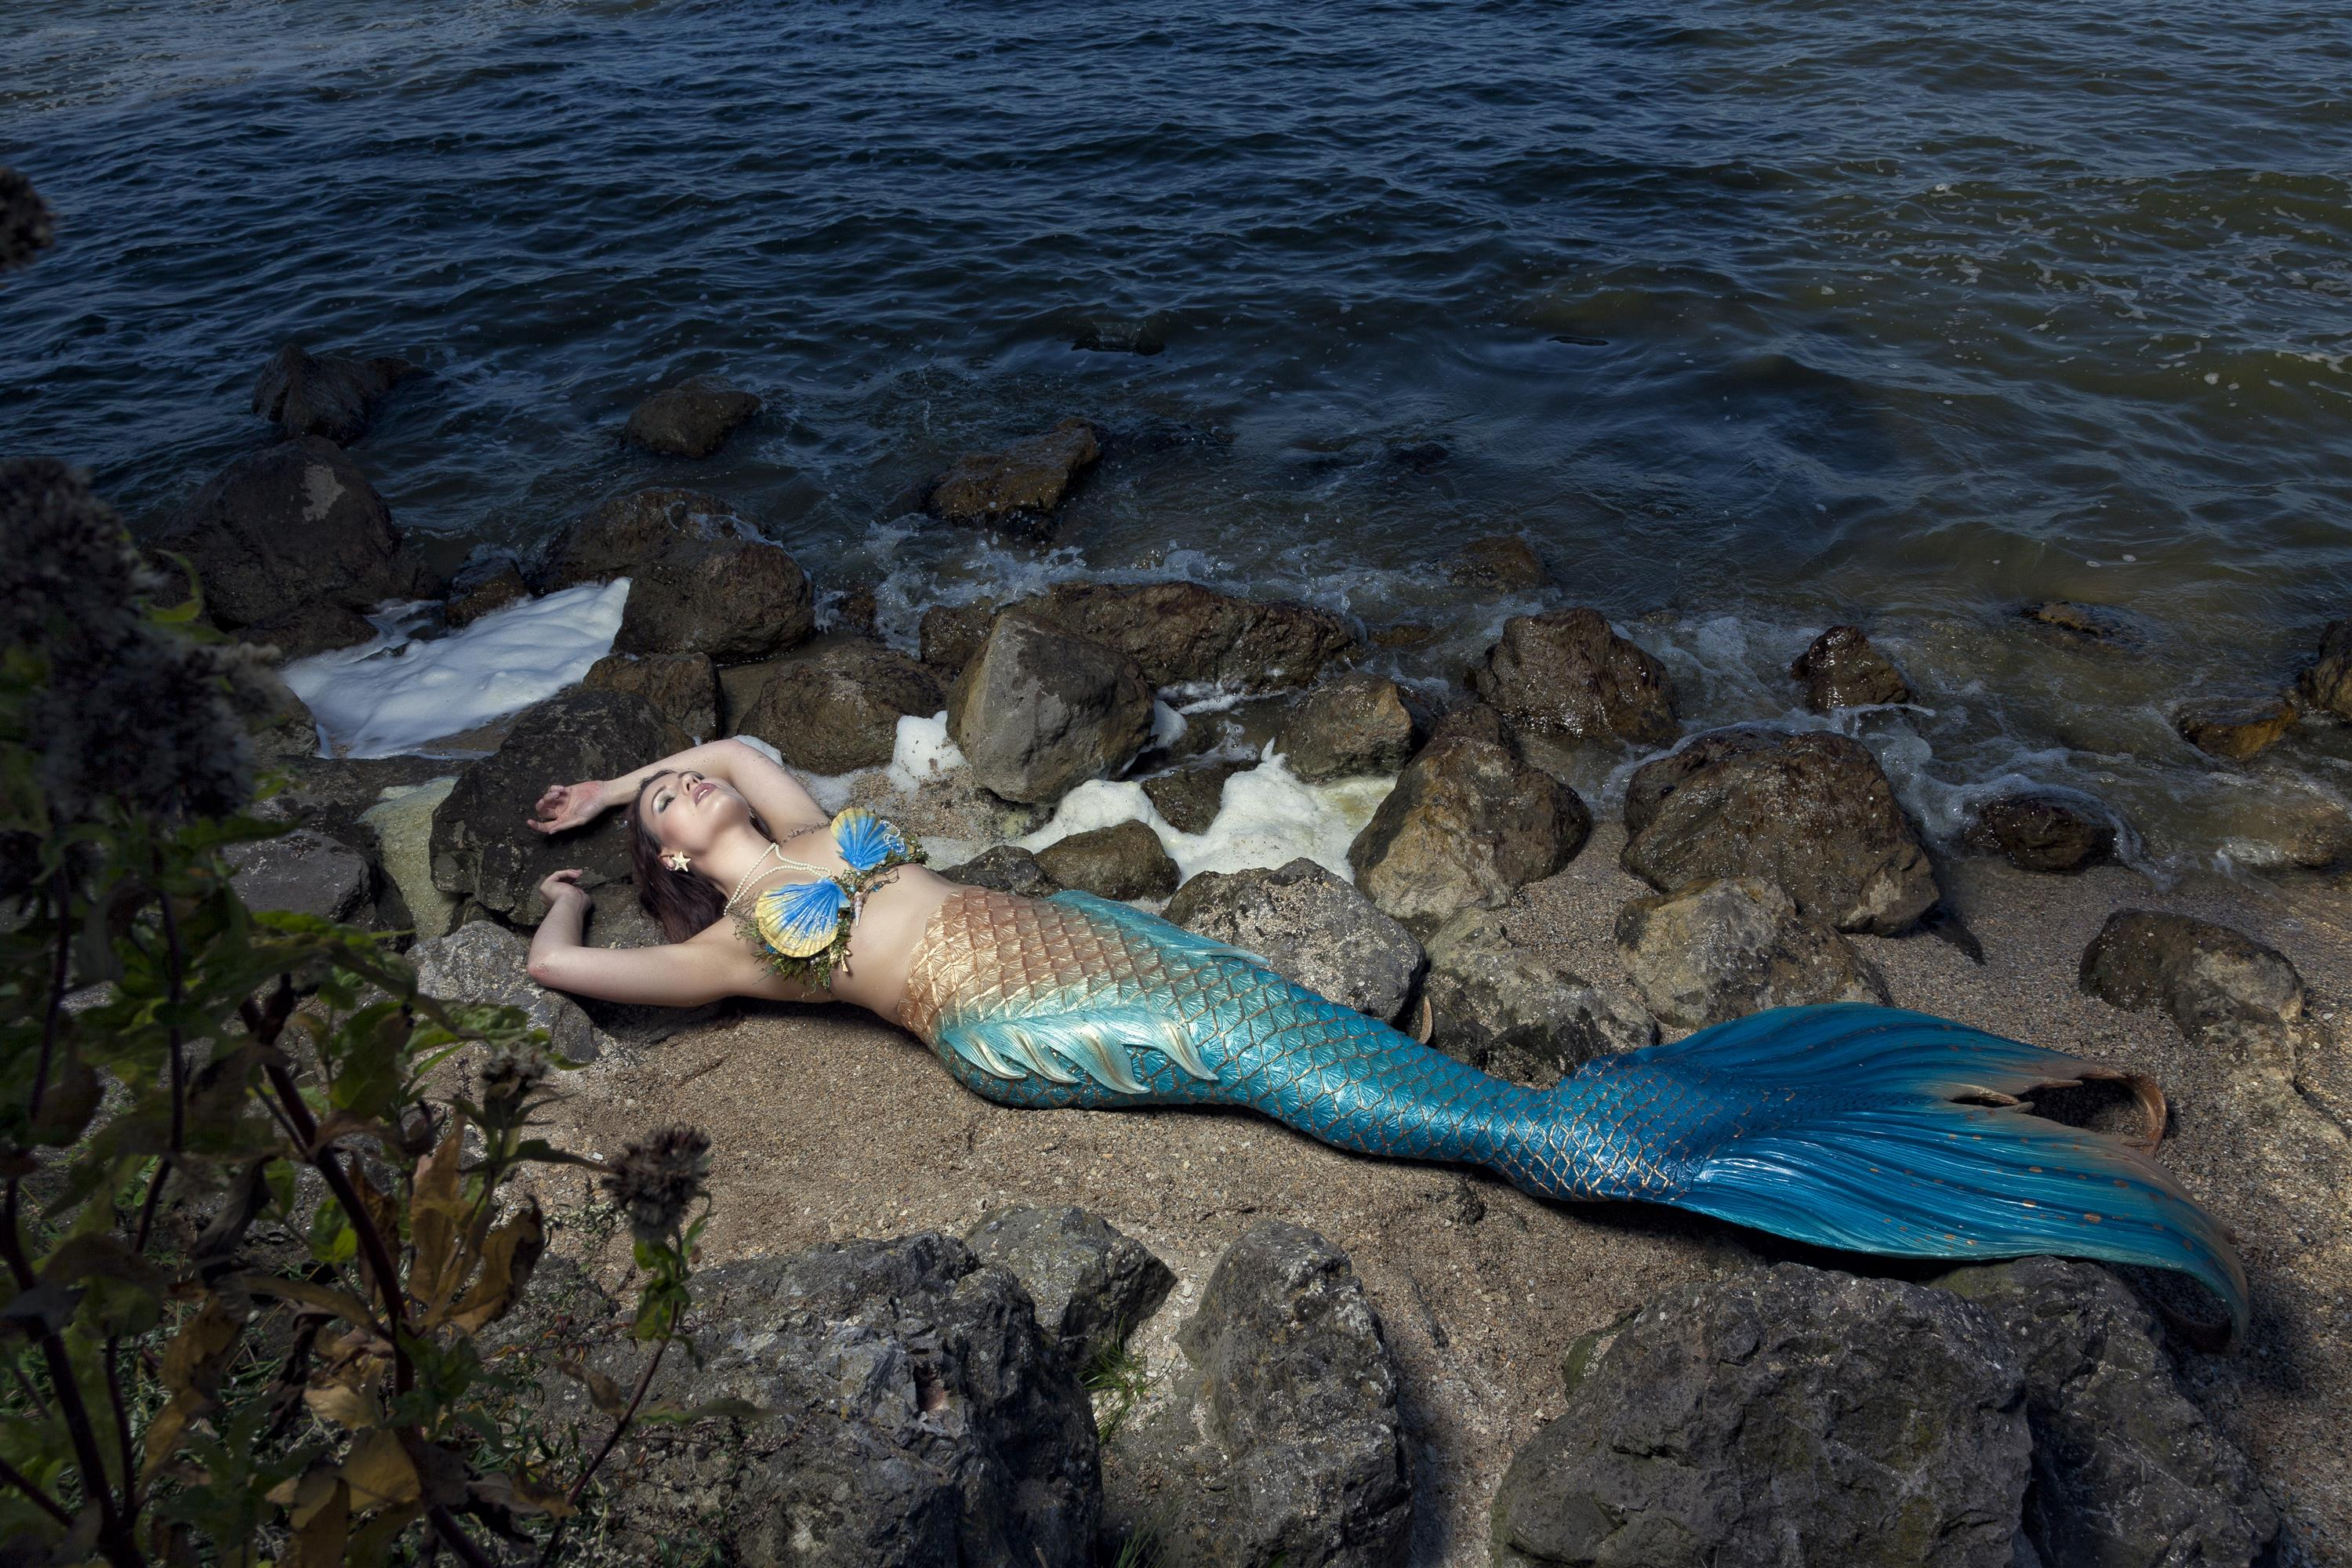 mermaid-photoshoot-wendy-appelman-photography-3-custom